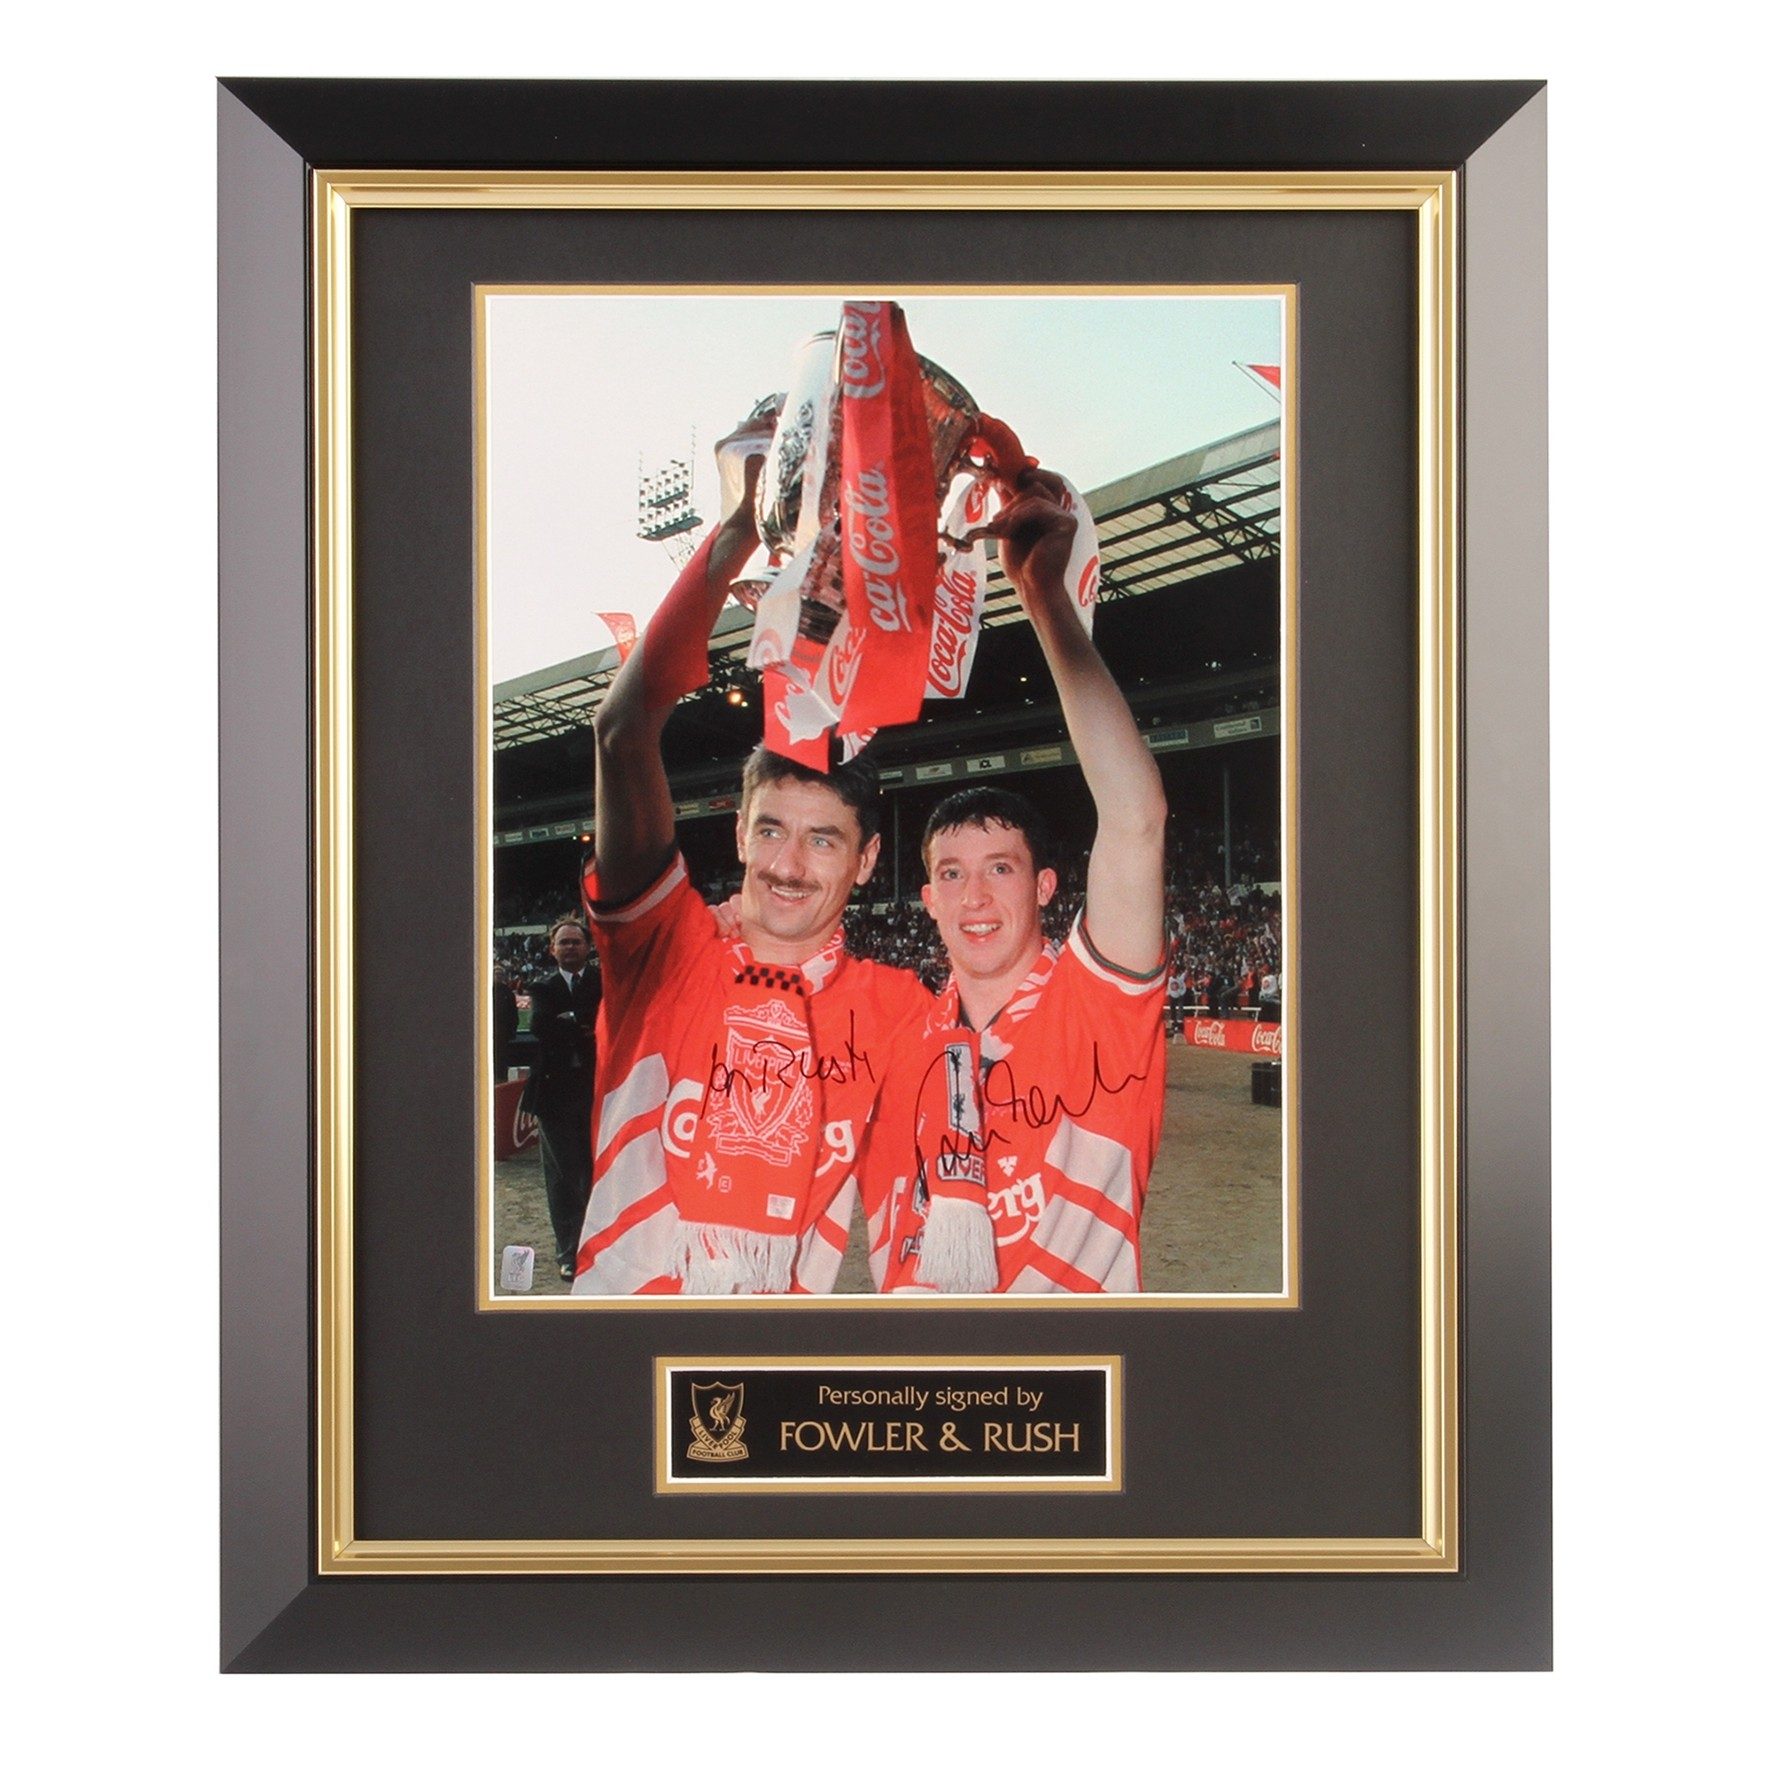 LFC Fowler and Rush Framed Image